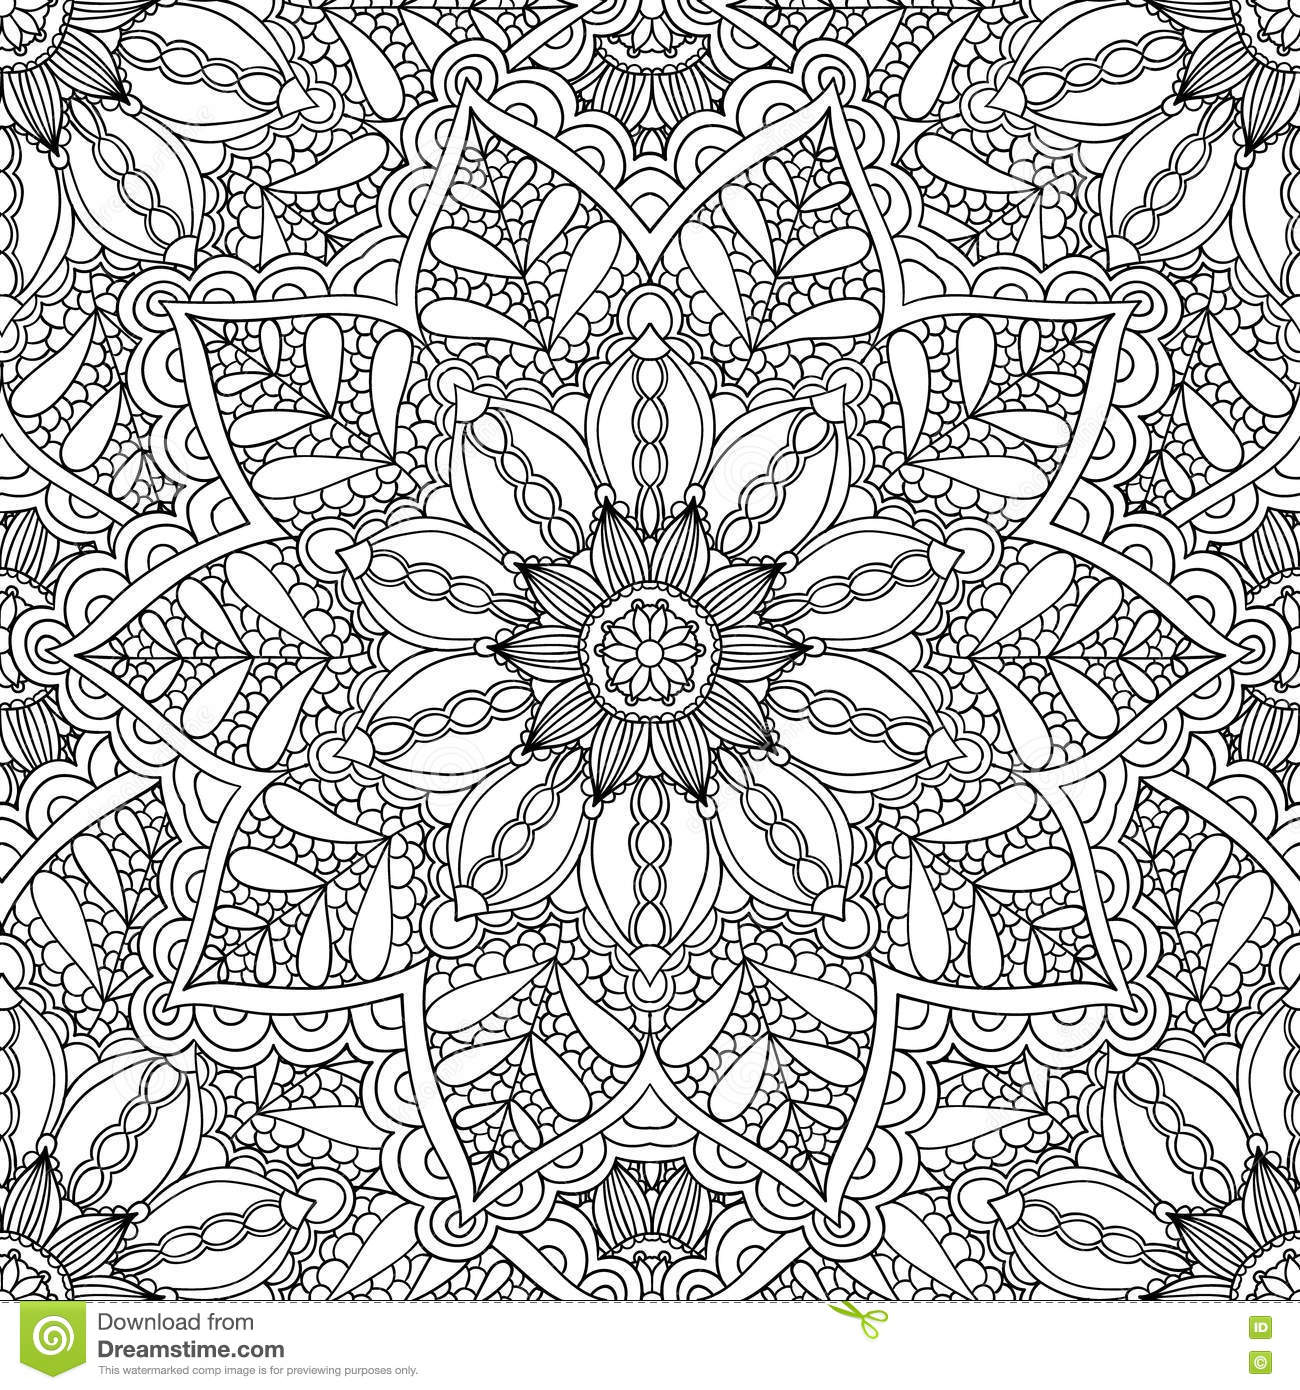 coloring pages for adultsdecorative hand drawn doodle nature ornamental curl vector sketchy seamless pattern - Nature Coloring Pages For Adults